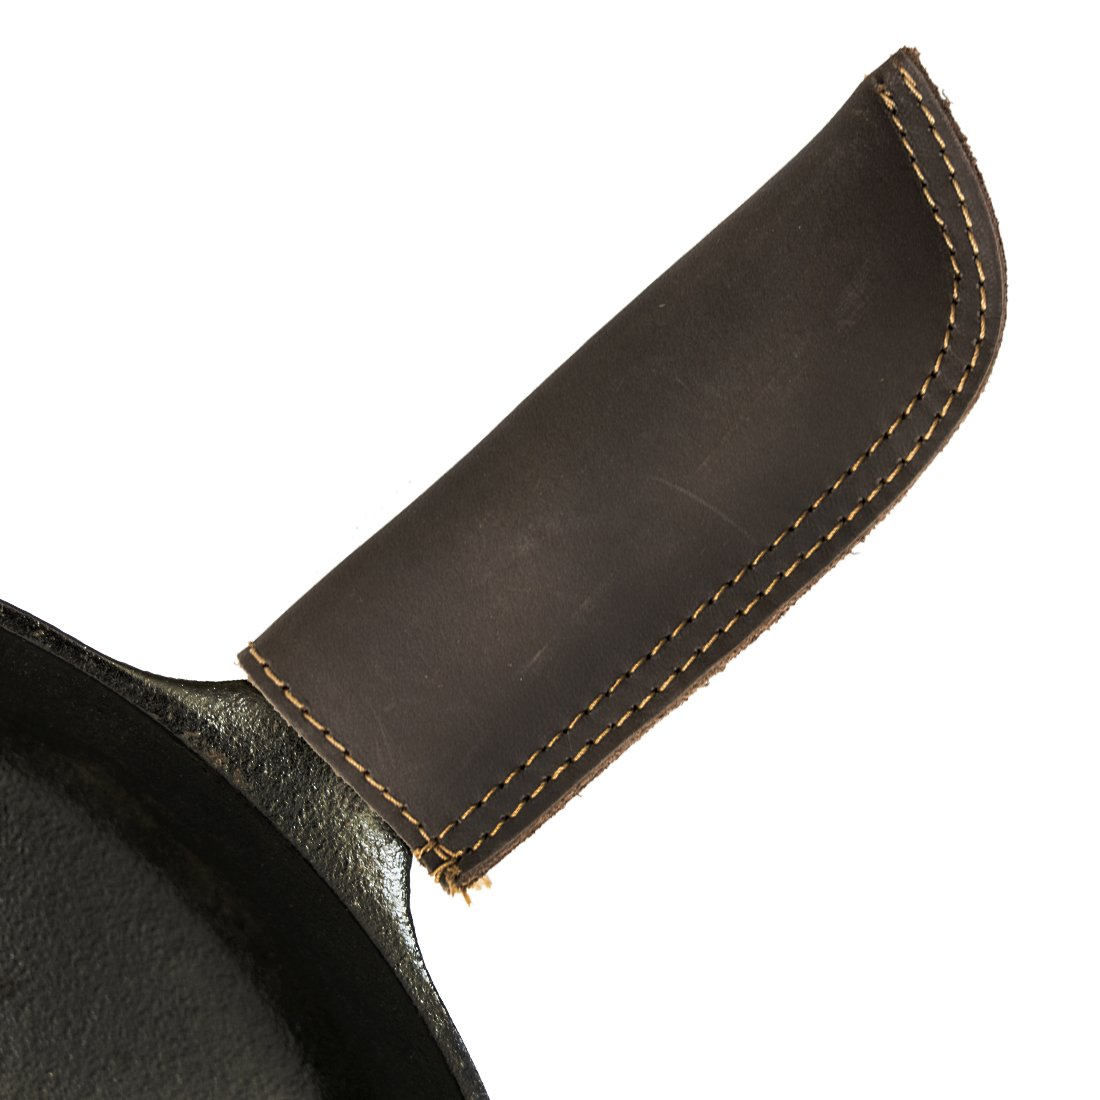 Leather Hot Handle Holder (Cast Iron Panhandle Potholder) Double Layered, Double Stitched and Handmade by Hide & Drink :: Espresso